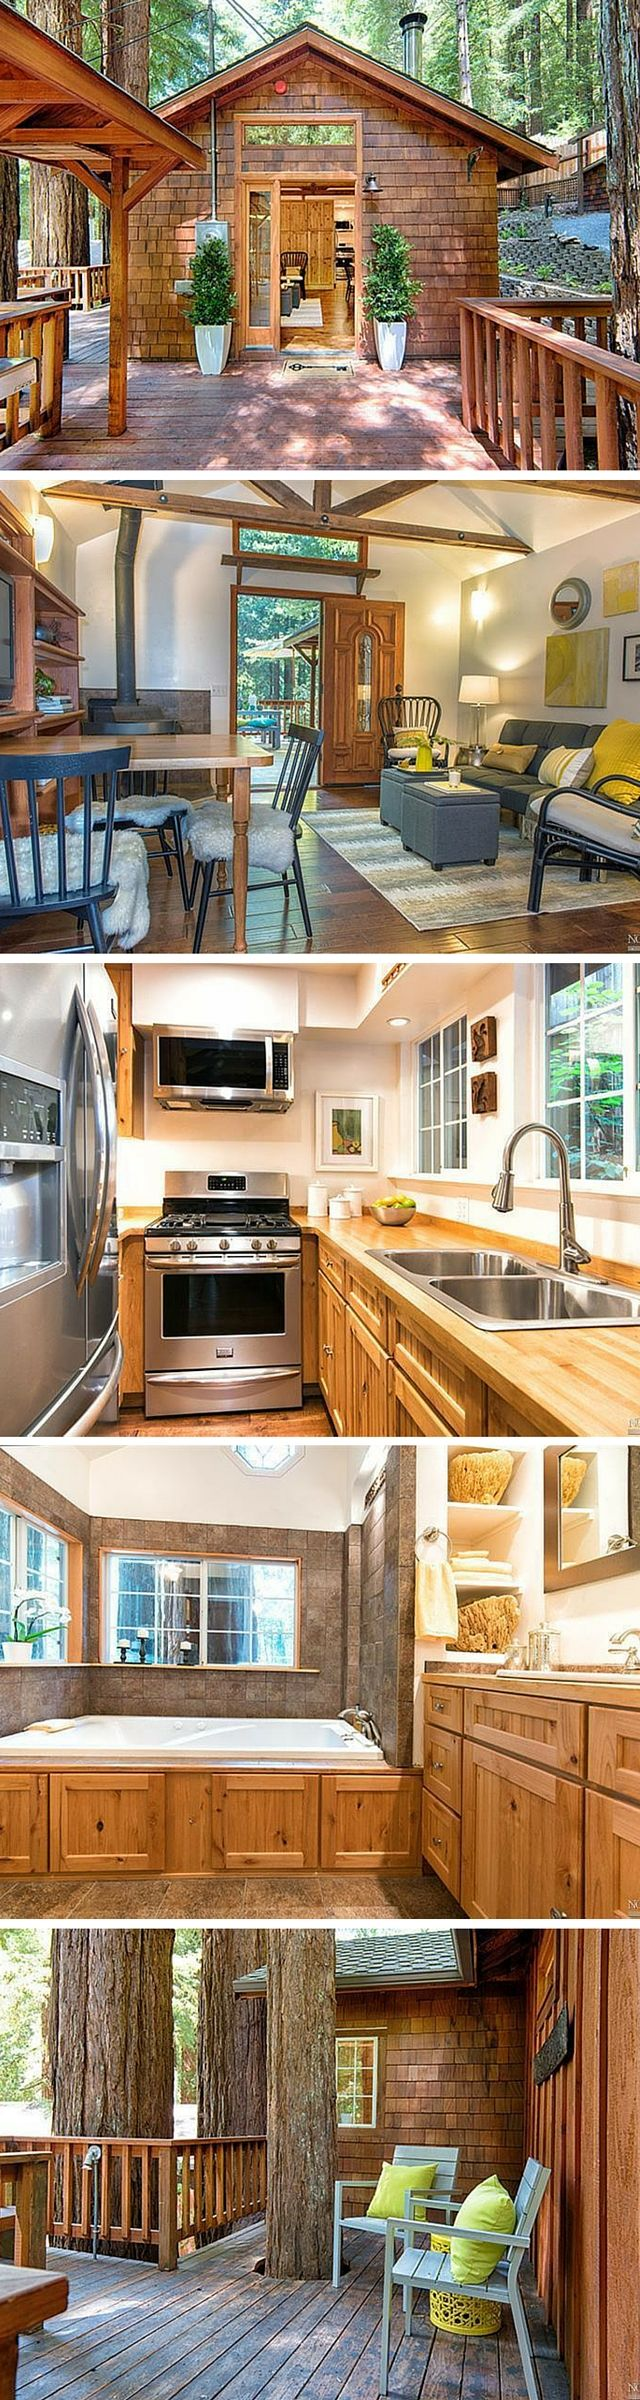 2526 best Tiny / Small Houses images on Pinterest | Attic spaces ...